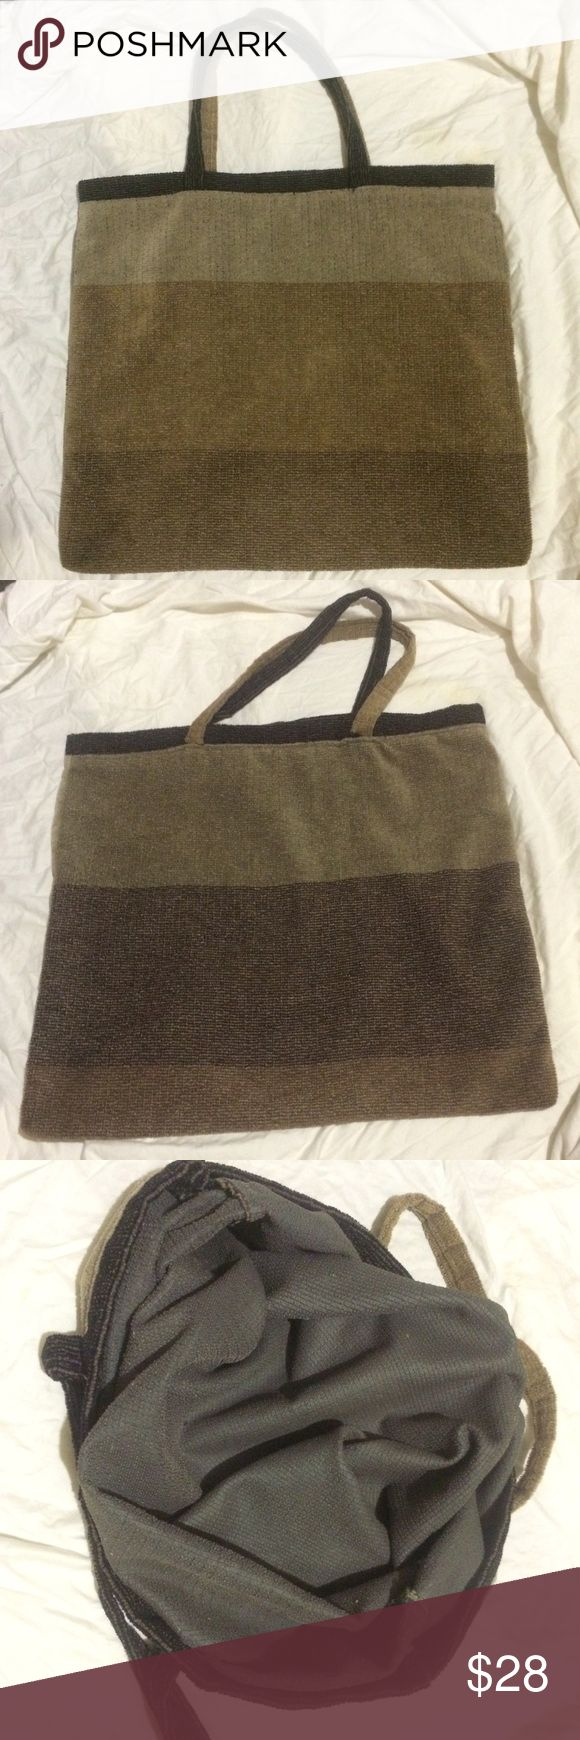 "EXTRA LARGE Tote Bag 24"" across bottom and 22"" top to bottom w/12"" strap drop. This bag will hold it ALL! Material has soft velvet feel. Colors are in neutral Browns and grays. Bags"